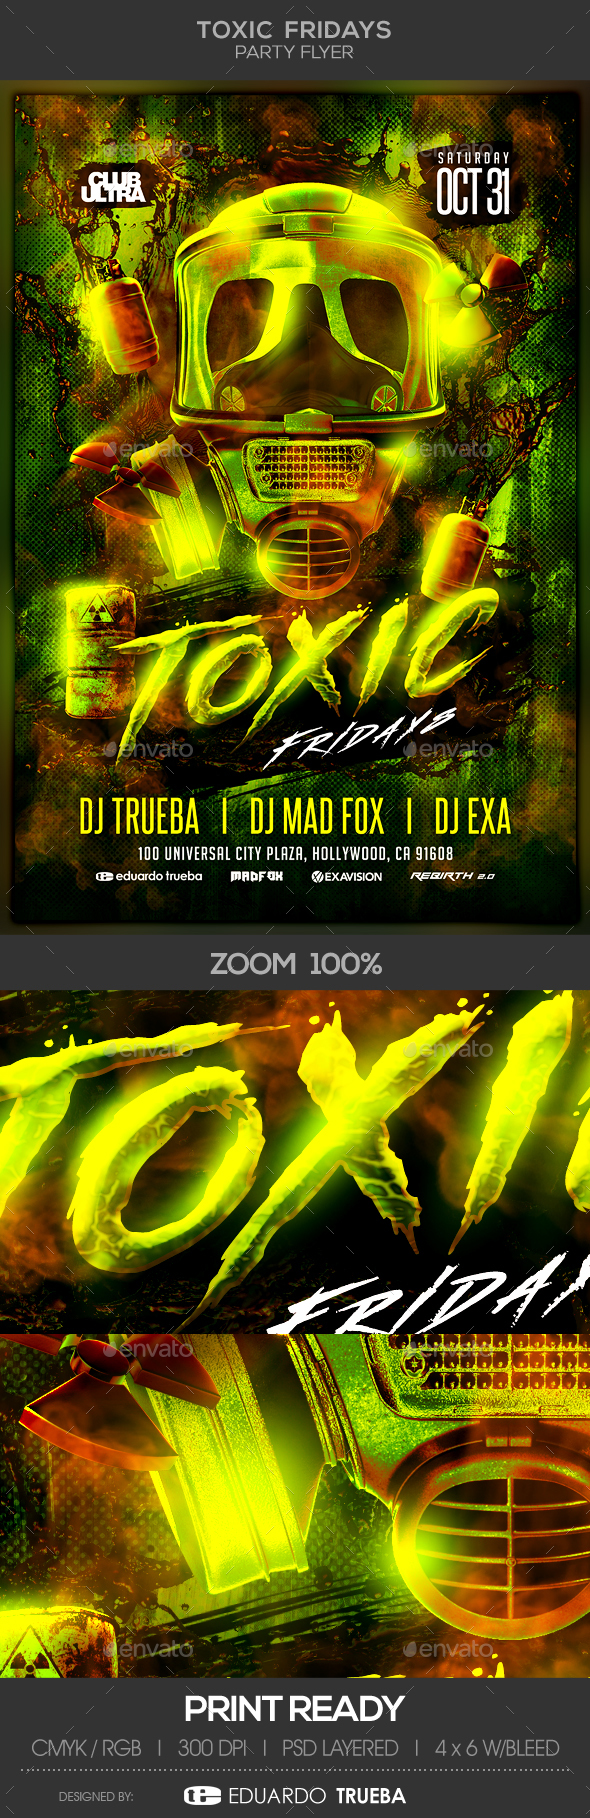 Toxic Fridays Party Flyer - Clubs & Parties Events